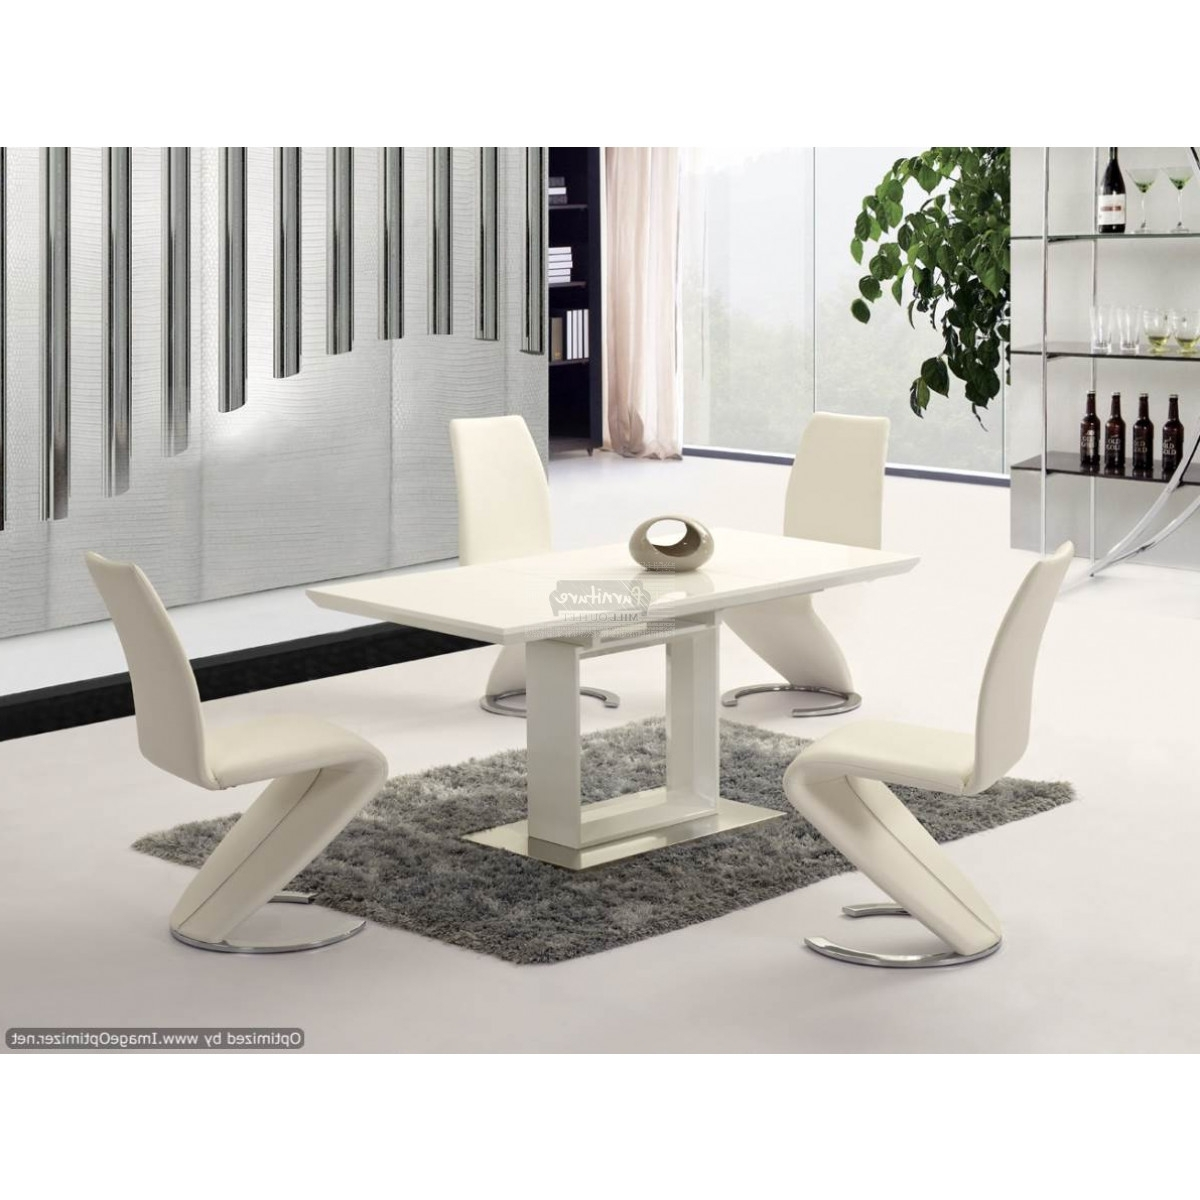 White Gloss Dining Tables 120Cm Inside Most Recently Released Space White High Gloss Extending Dining Table – 120Cm To 160Cm (View 18 of 25)